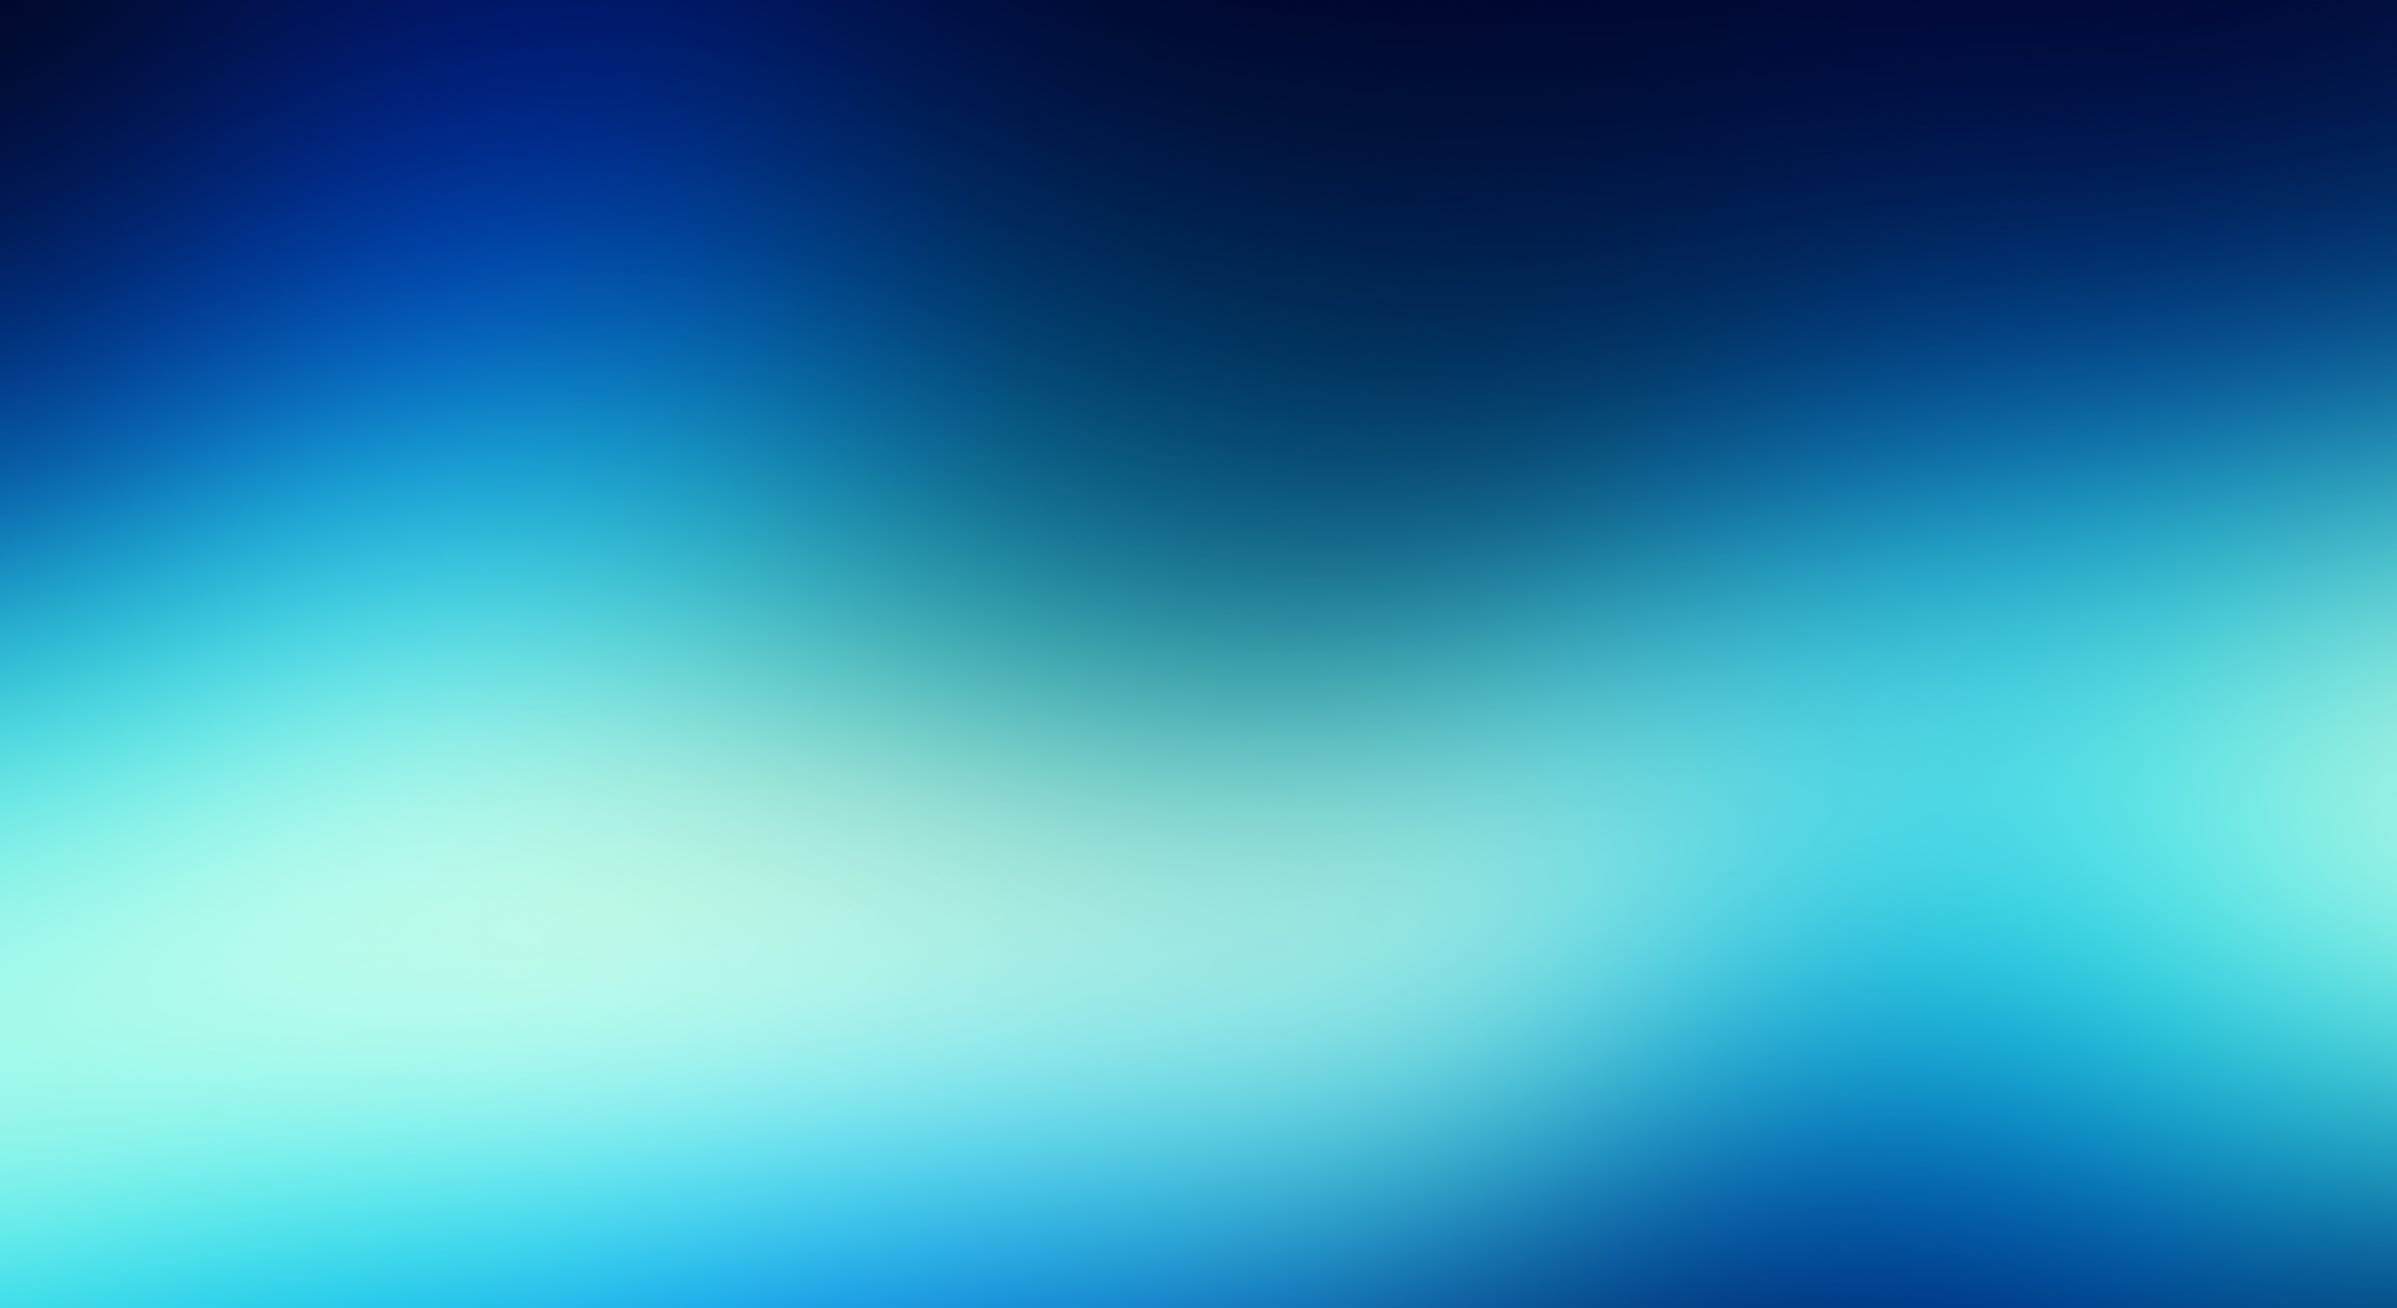 blurry_blue_background_2-wallpaper-2400x1350